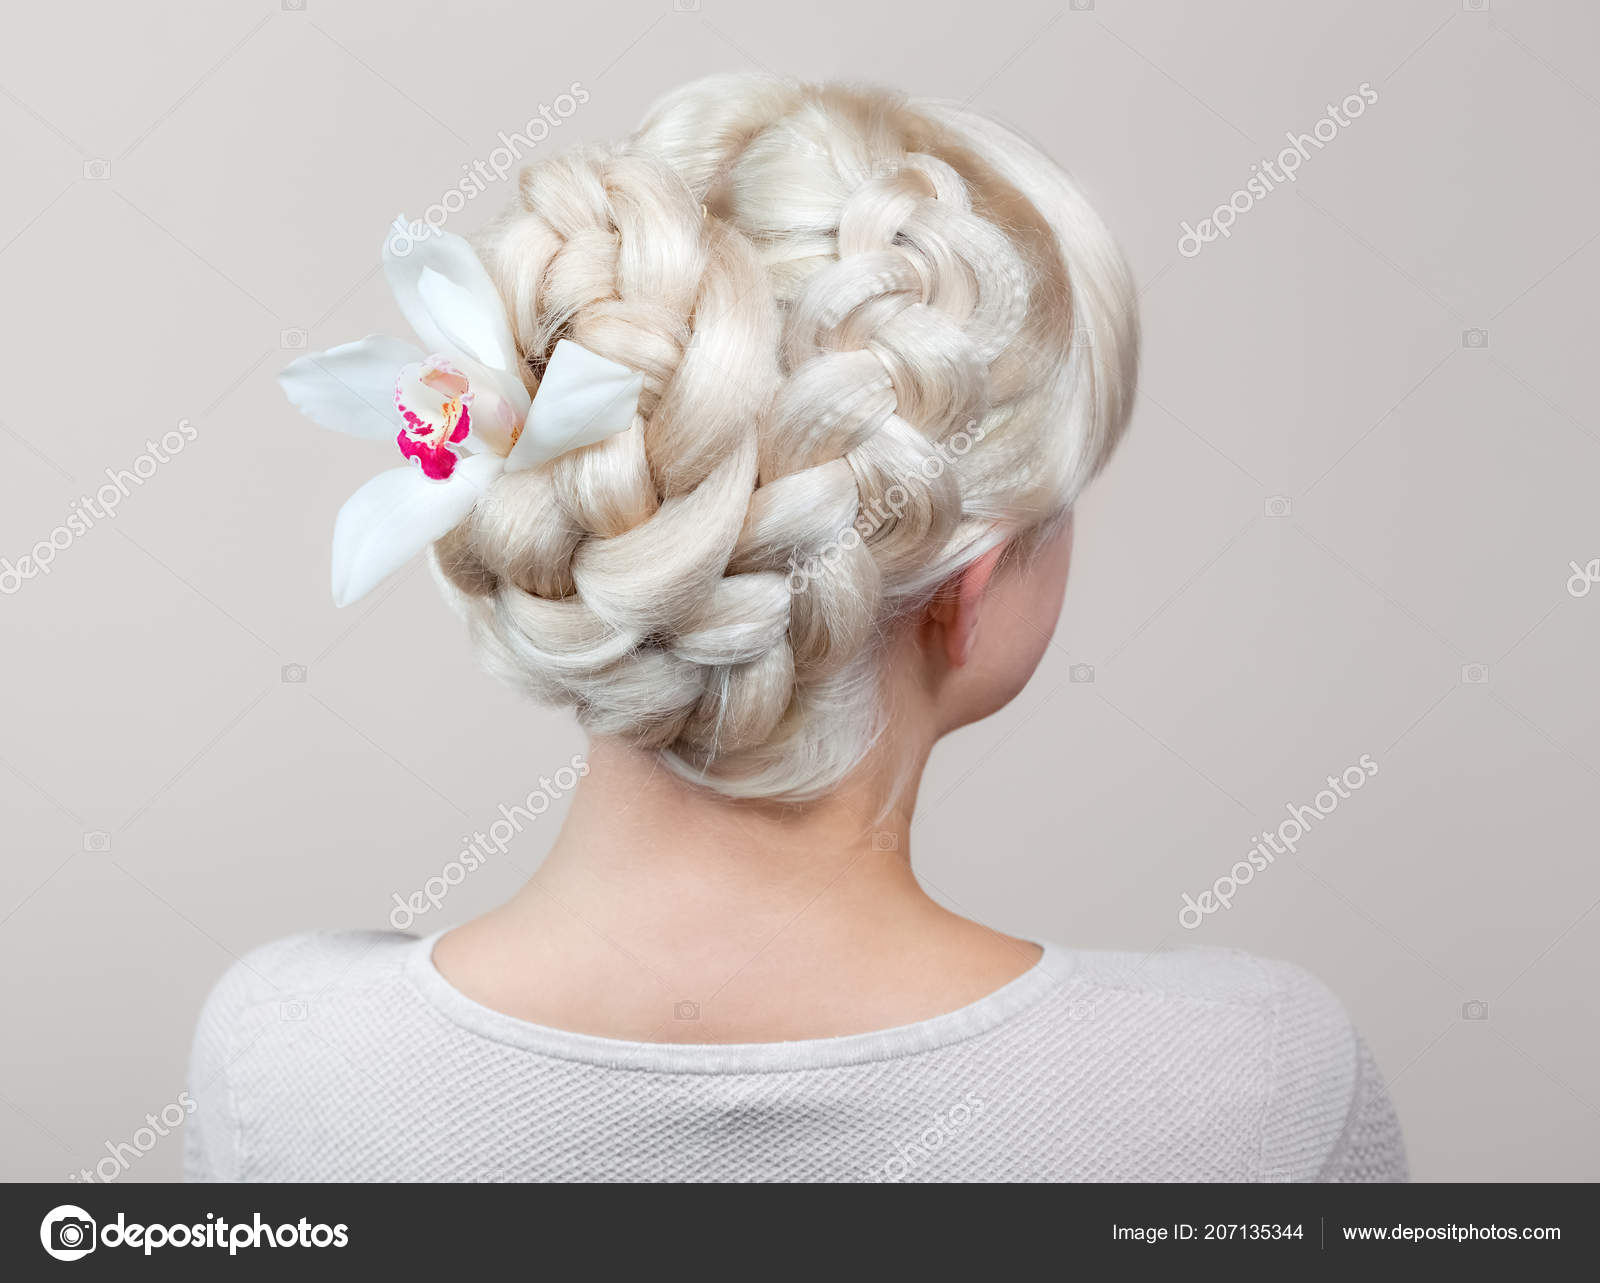 Beautiful Girl Blonde Hair Hairdresser Weaves Braid Close Beauty